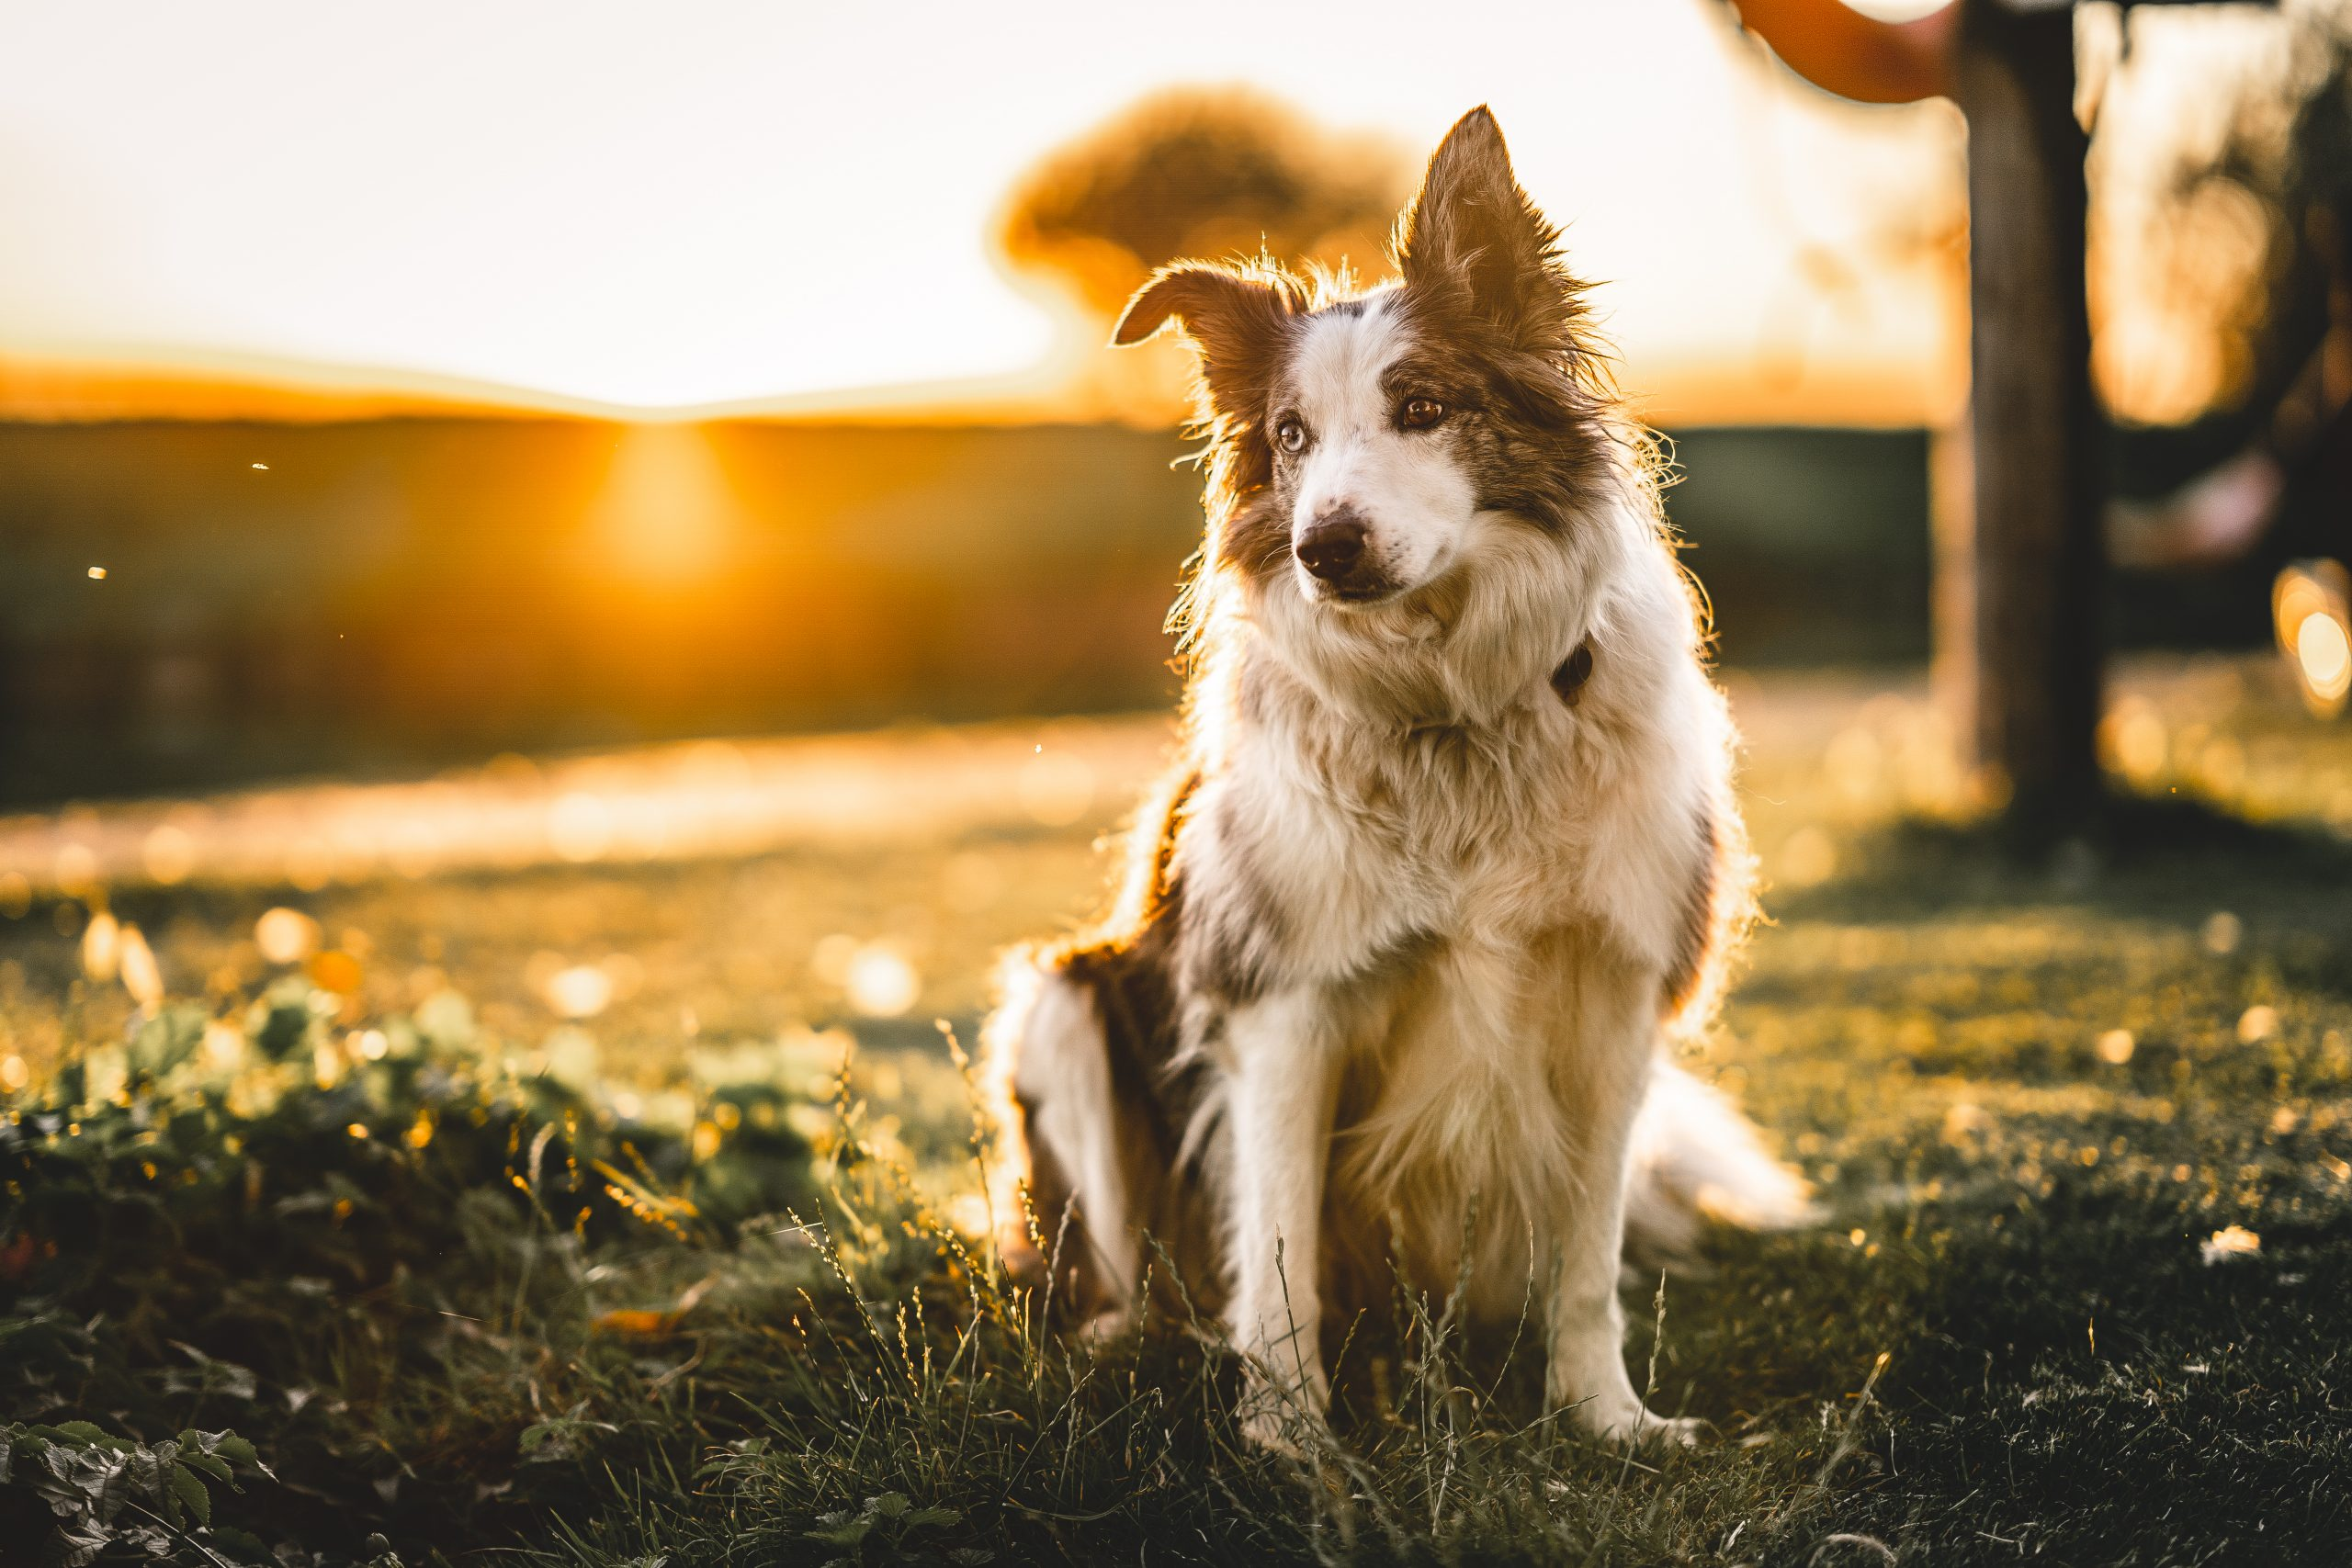 Dogs – Collies